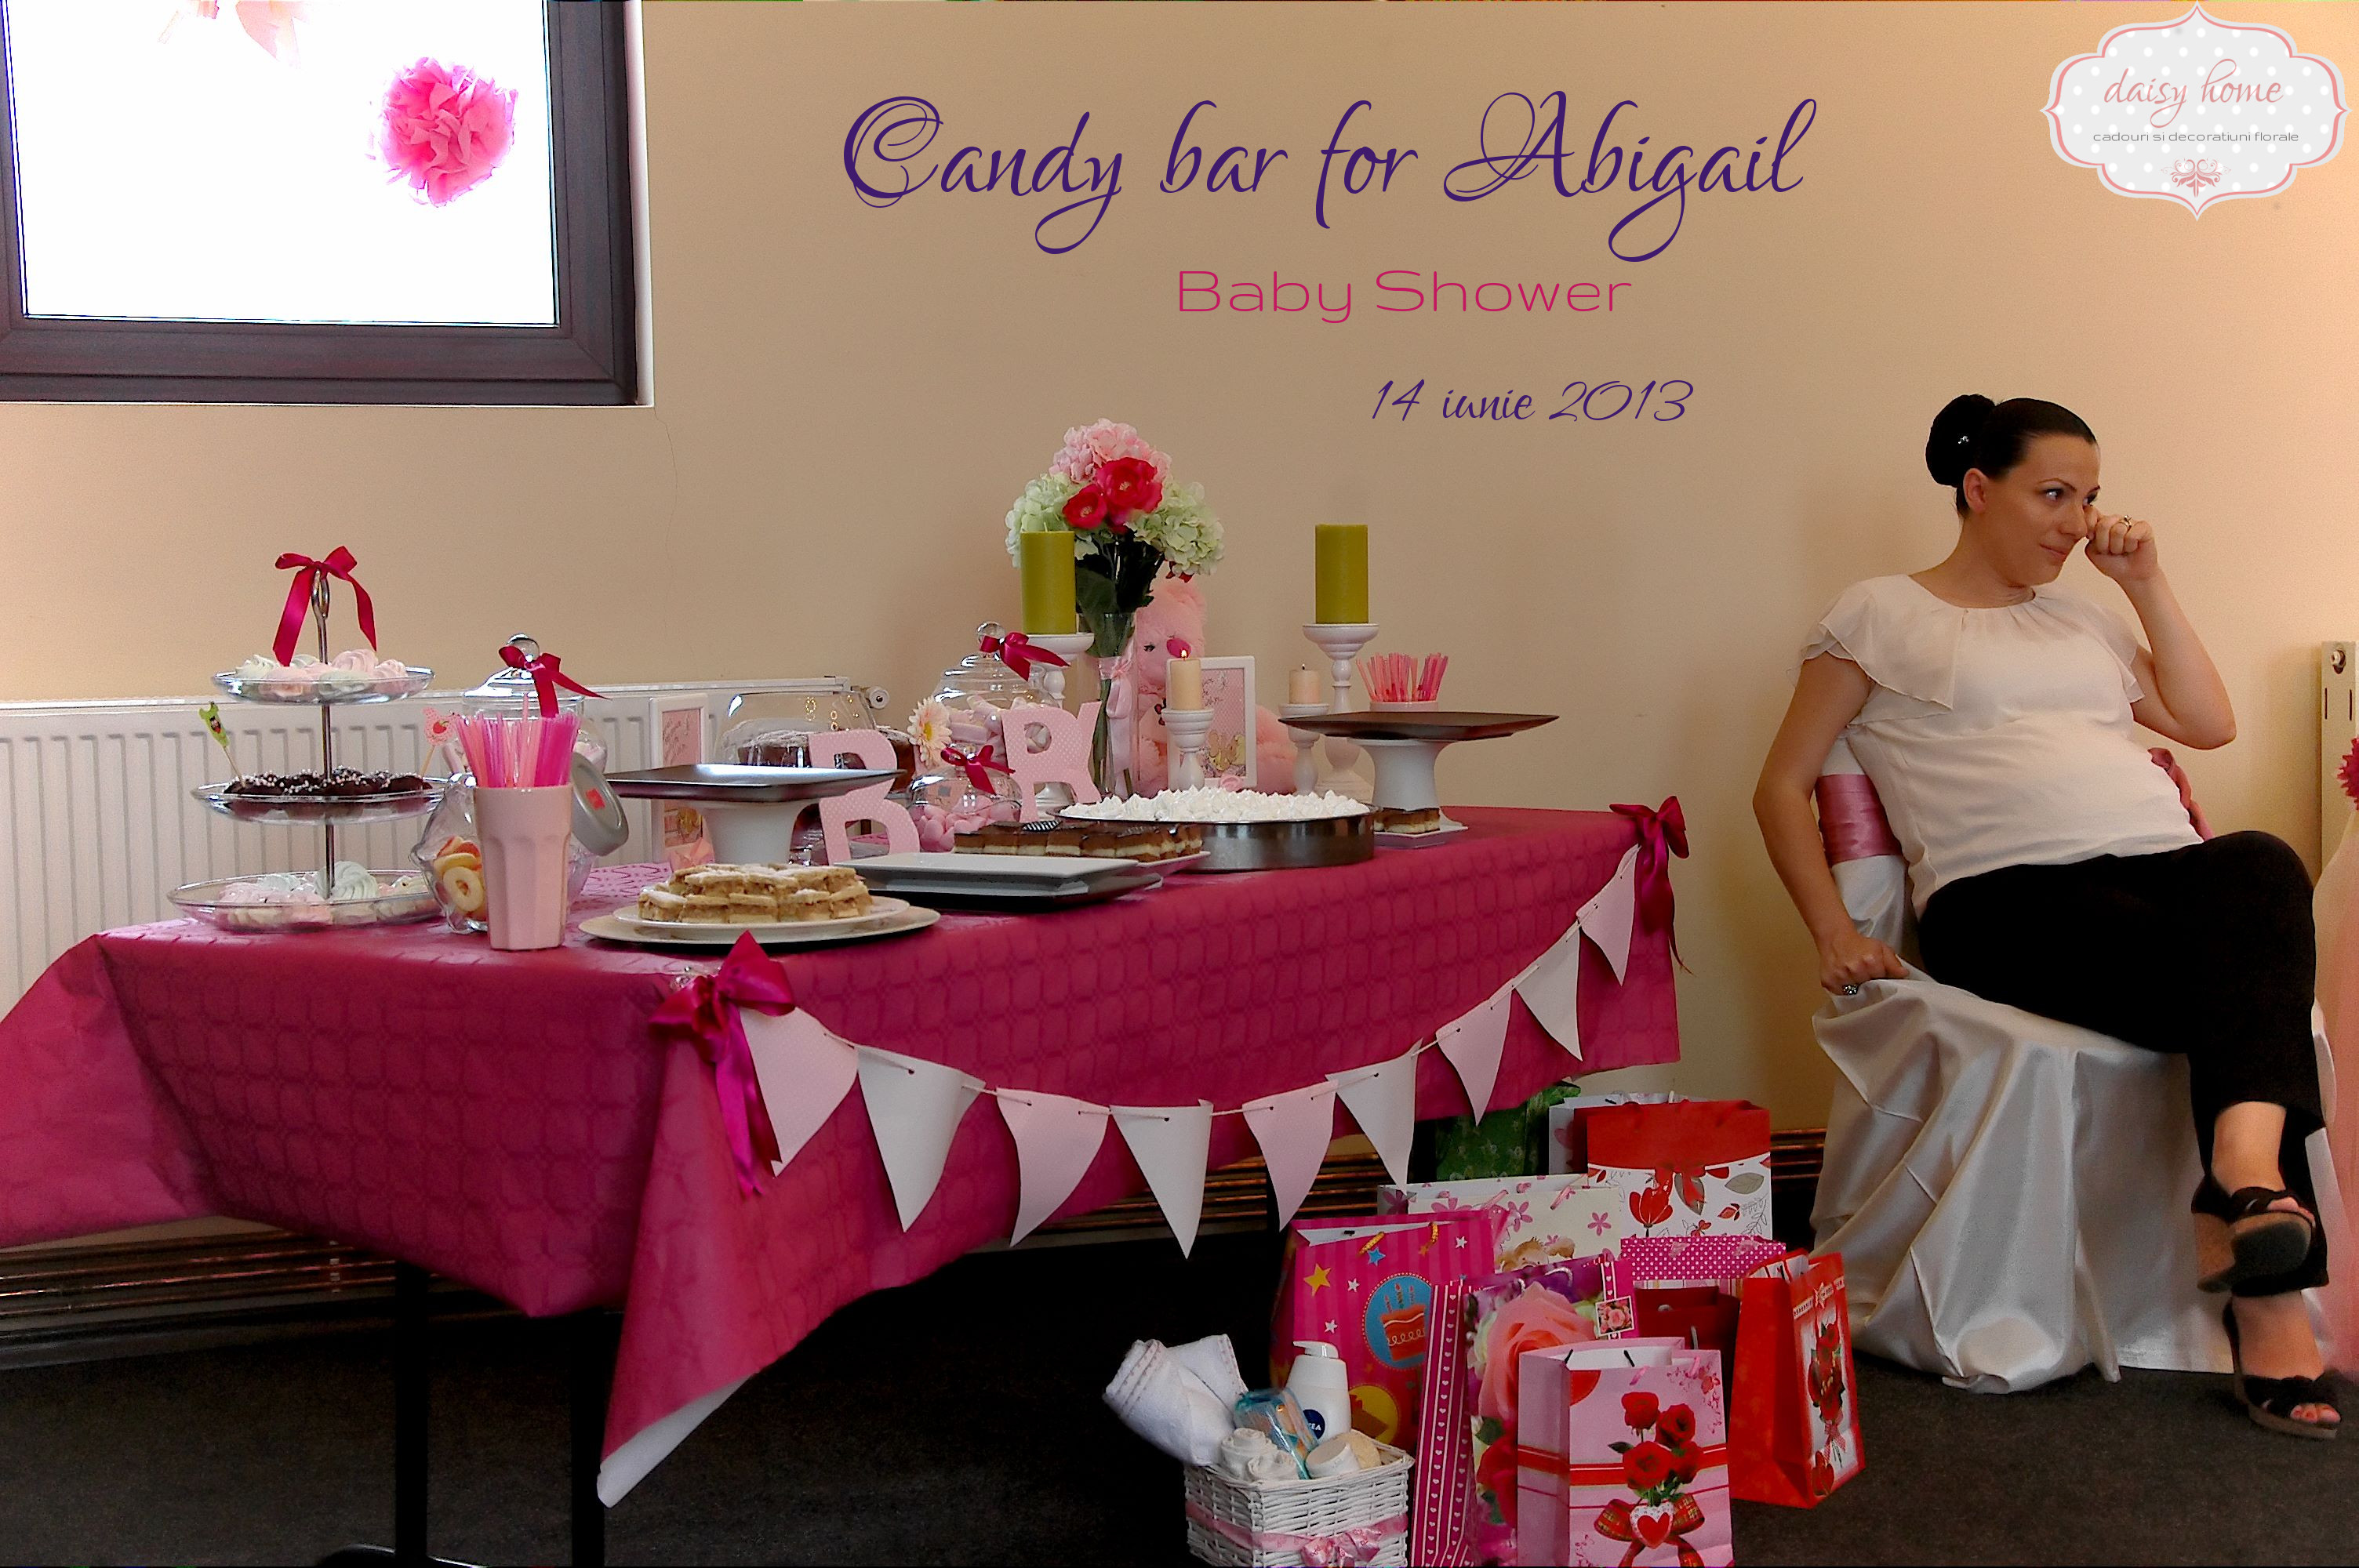 Candy bar for Abigail